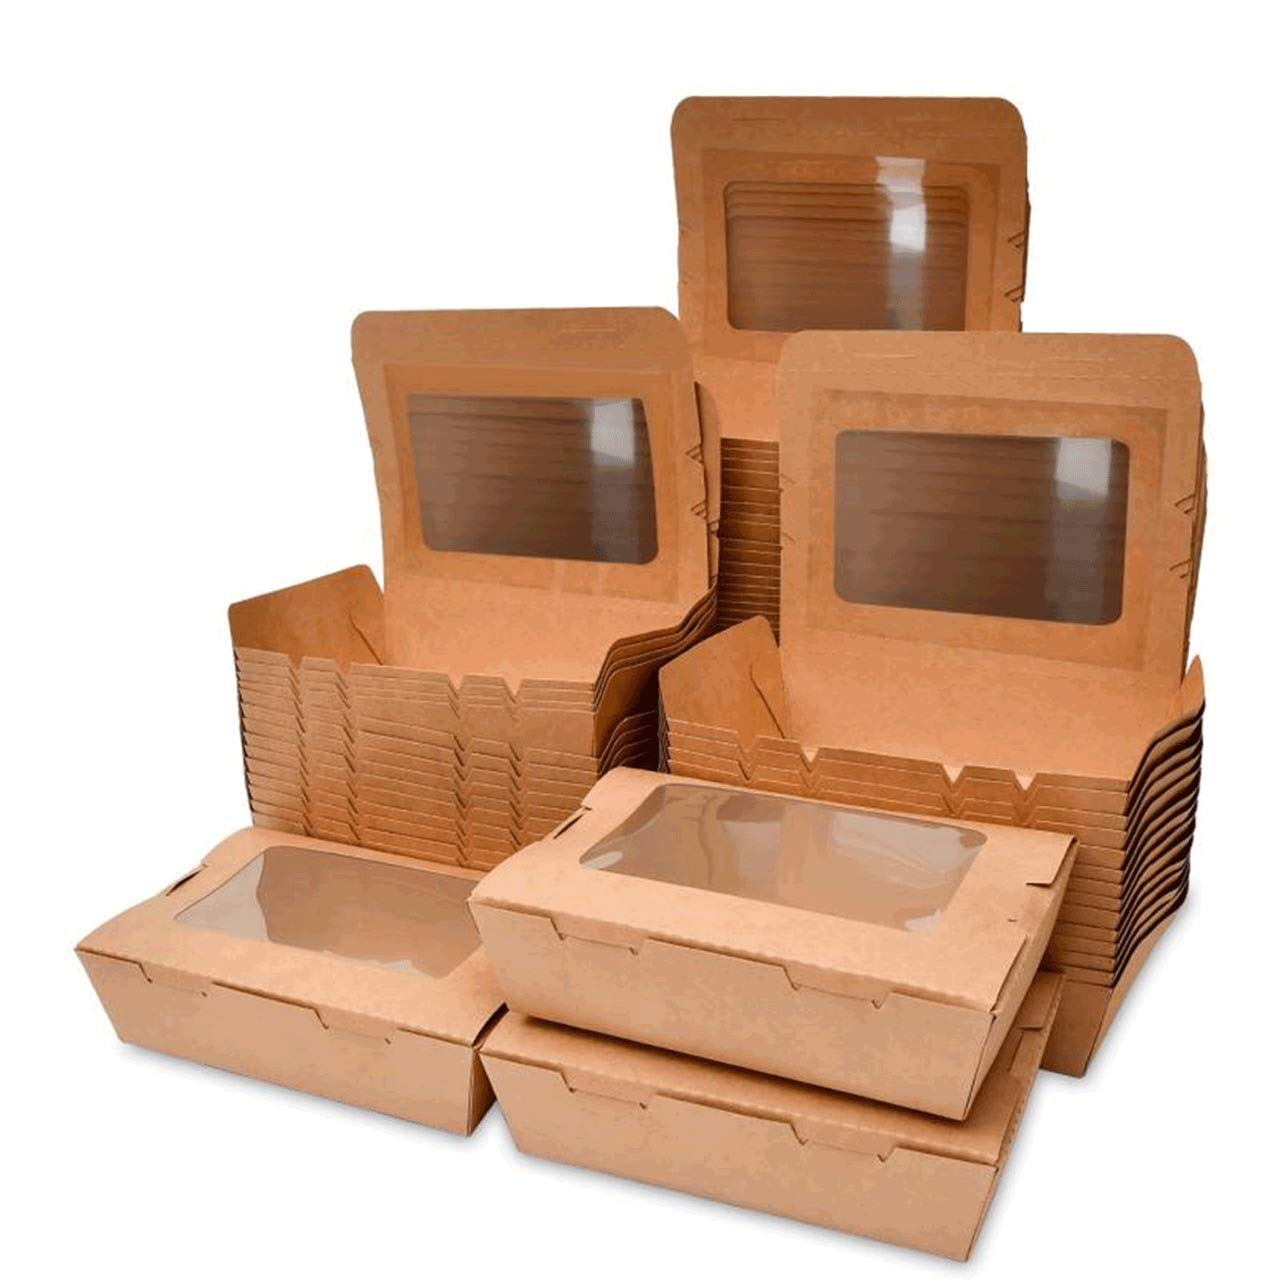 Take Out Food Containers 40 oz (50 Pack) Kraft Brown Take Out Food Boxes, With 18PE film Leak and Grease Resistant Food Containers - Recyclable Lunch Box With transparent window- To Go Containers for Restaurant, Catering and Party